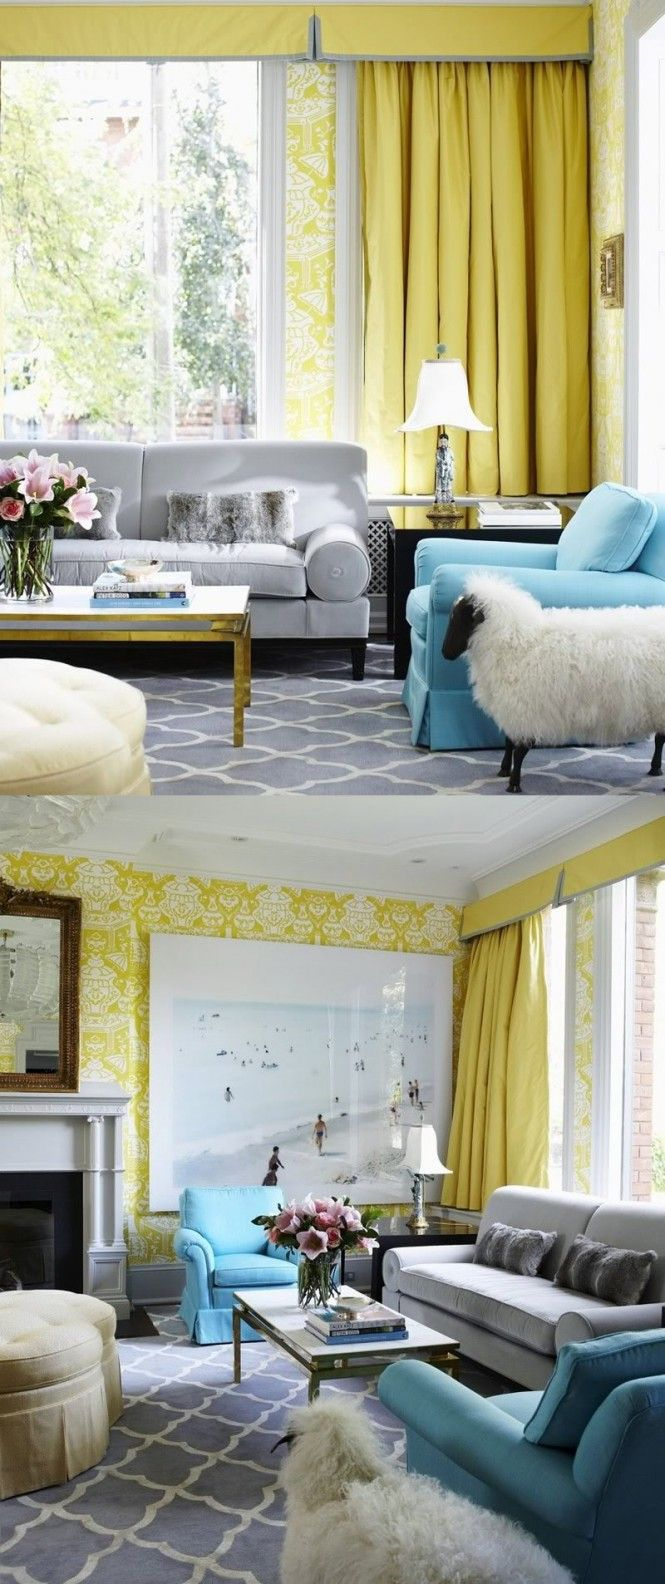 Decoration, Fascinating Two Combination Photos Of Yellow Duck Egg Blue Grey  Living Room With Elegant Comfy Sofa Sets Also Flower Ornaments A.